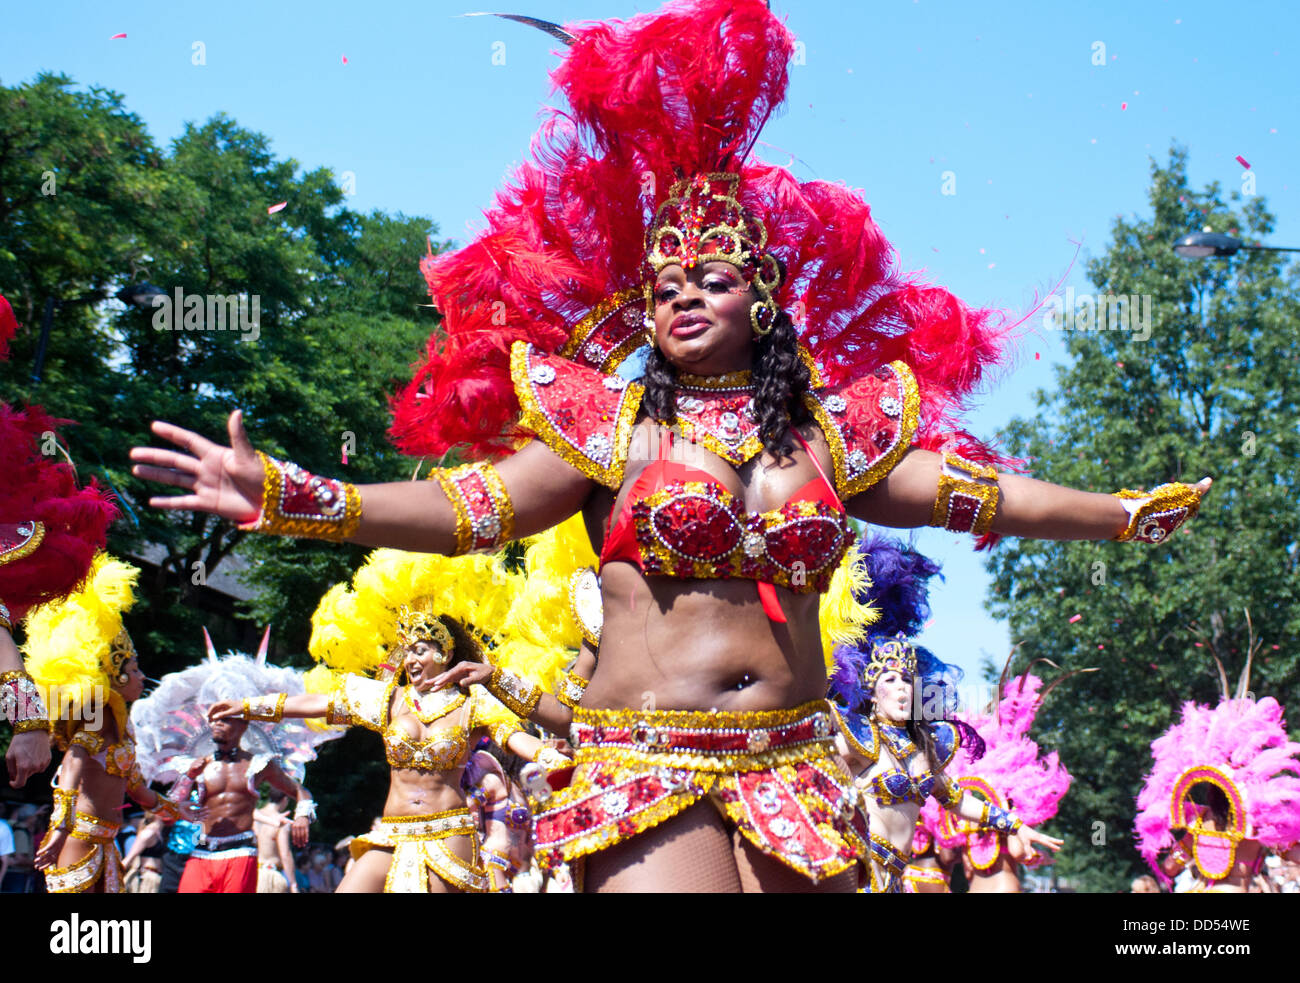 London, UK - 26 August 2013: revellers take part in the annual parade at the Notting Hill Carnival. Credit:  Piero - Stock Image